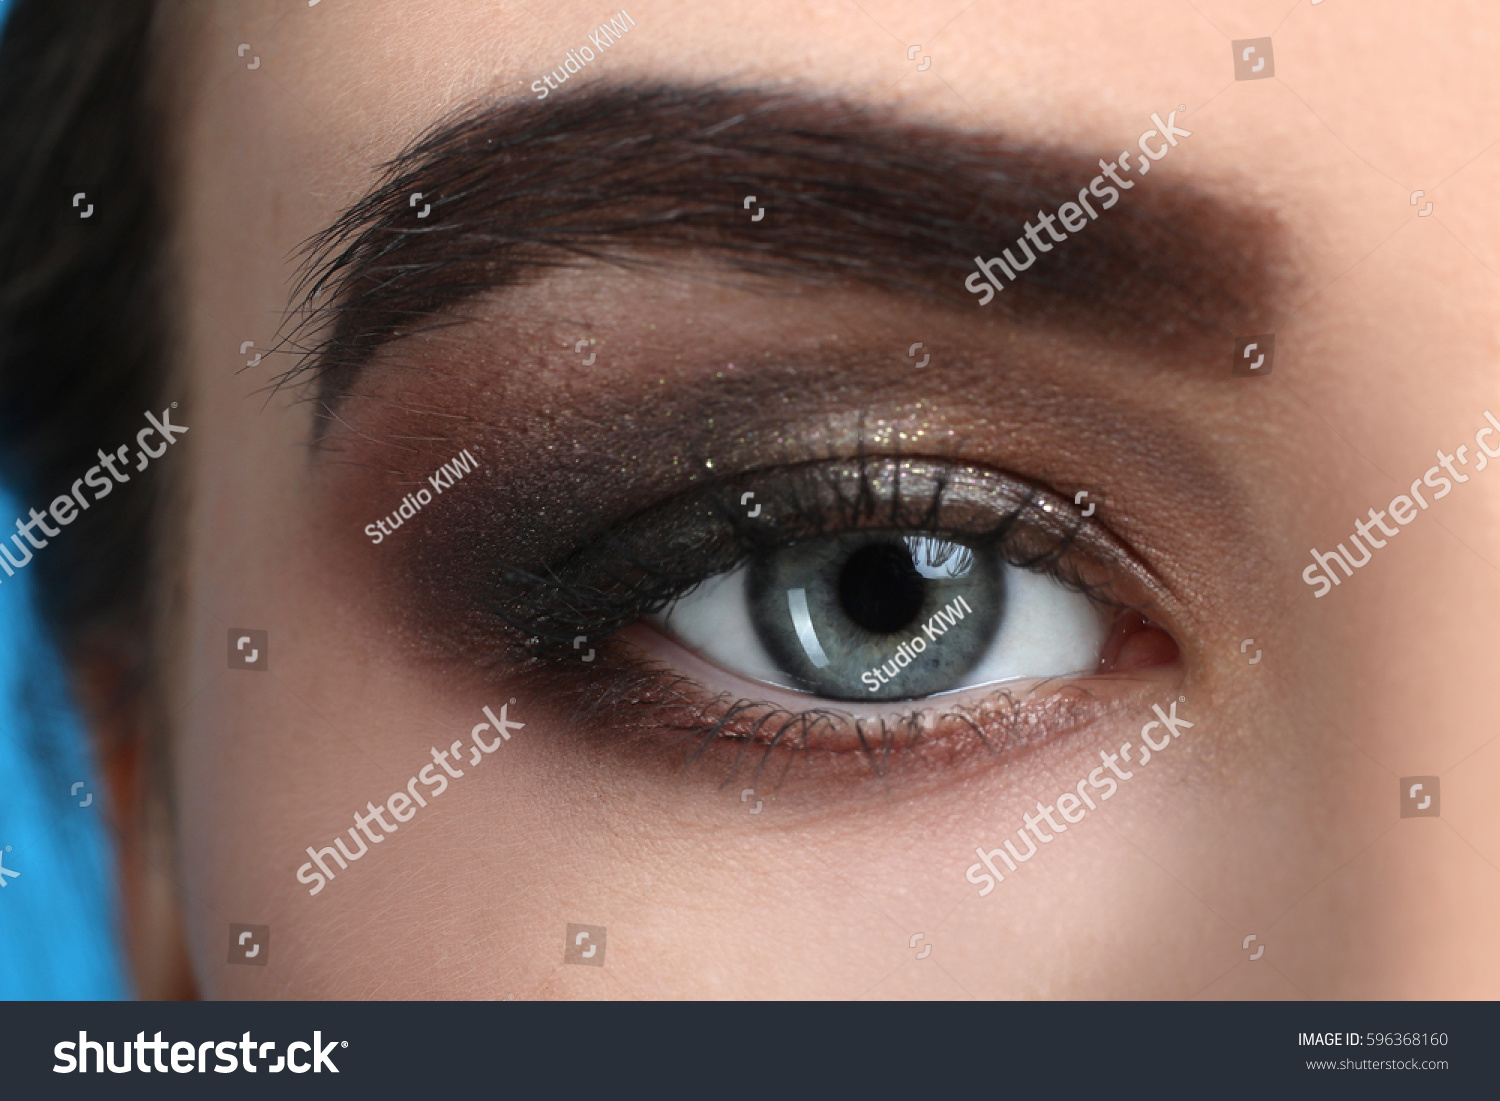 Eye Makeup Closeup Ez Canvas